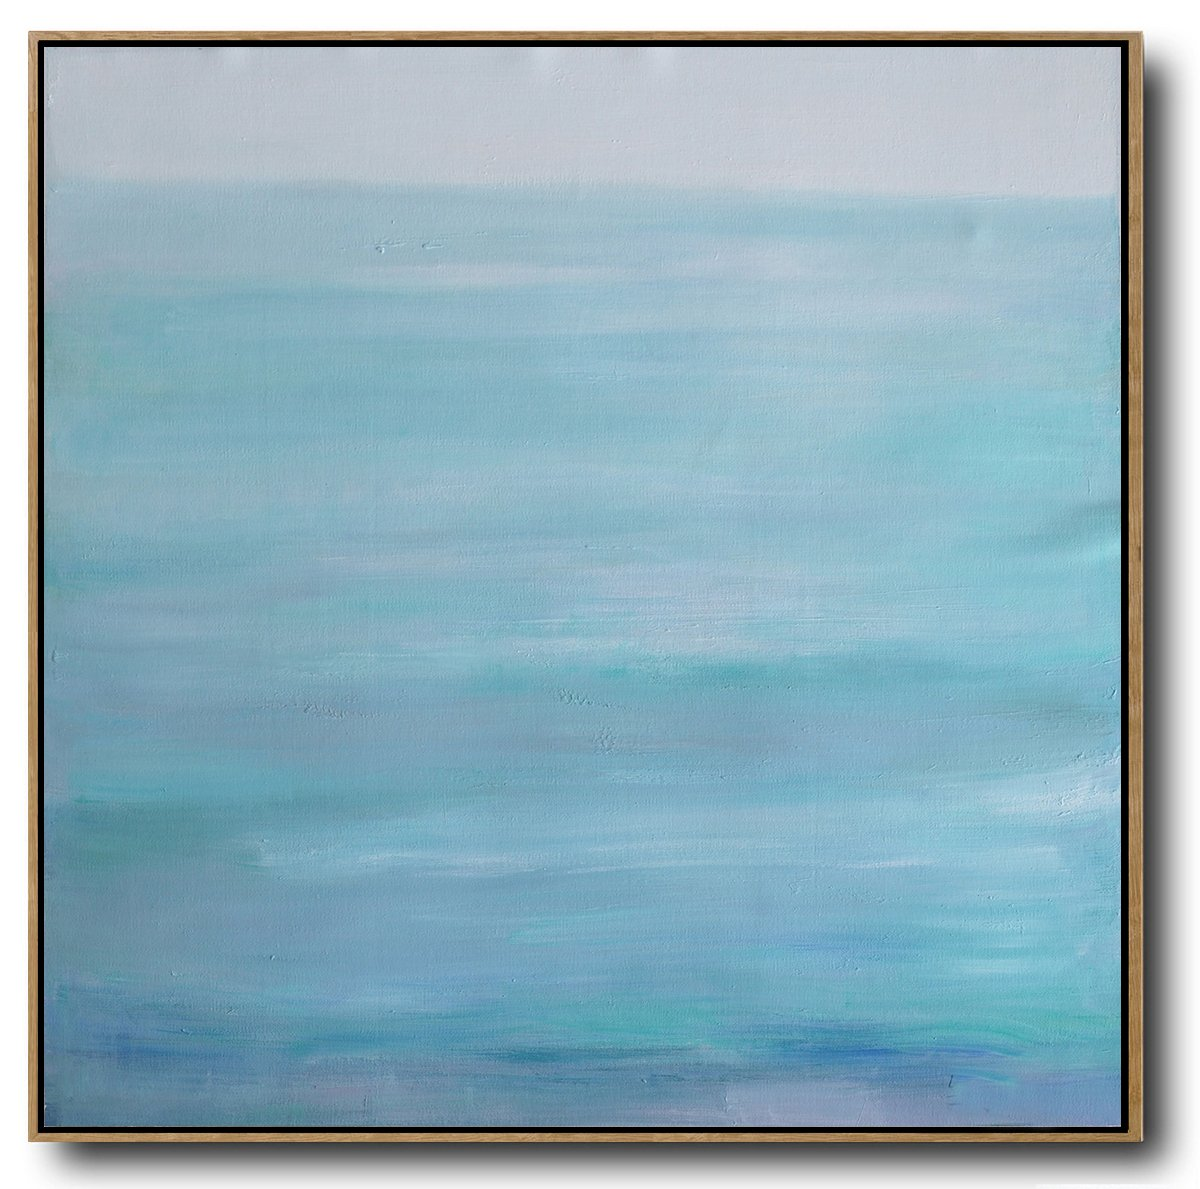 Huge Abstract Painting On Canvas,Large Abstract Landscape Oil Painting On Canvas,Hand Painted Original Art,Green,Blue,Gray.etc